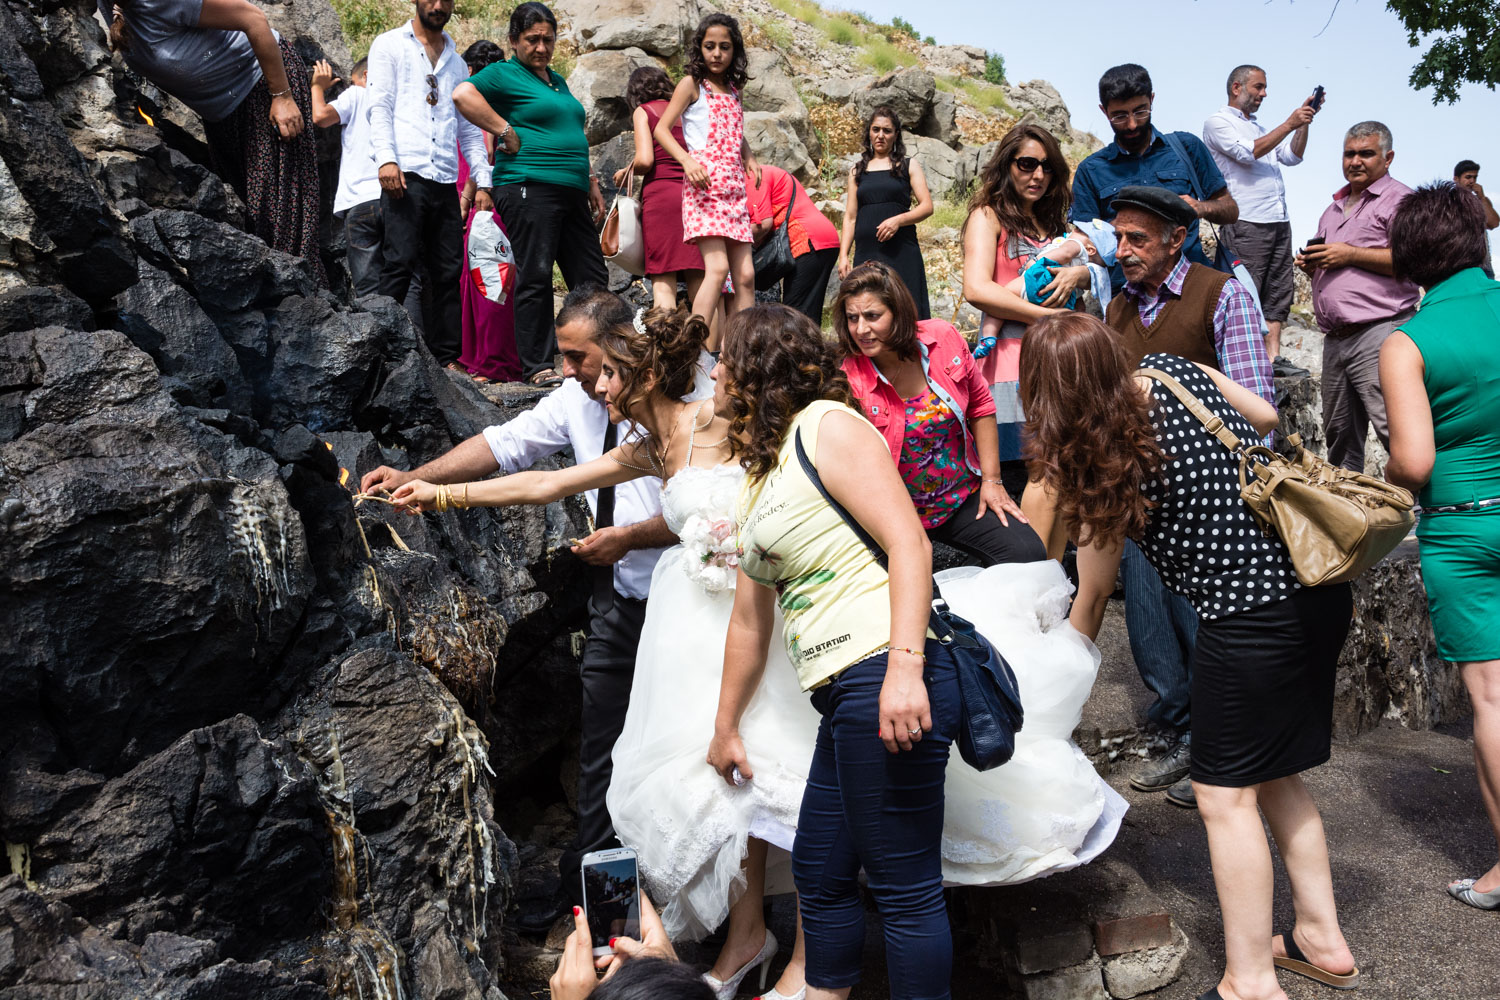 A newly married couple visits the source of the Munzur with their wedding party.